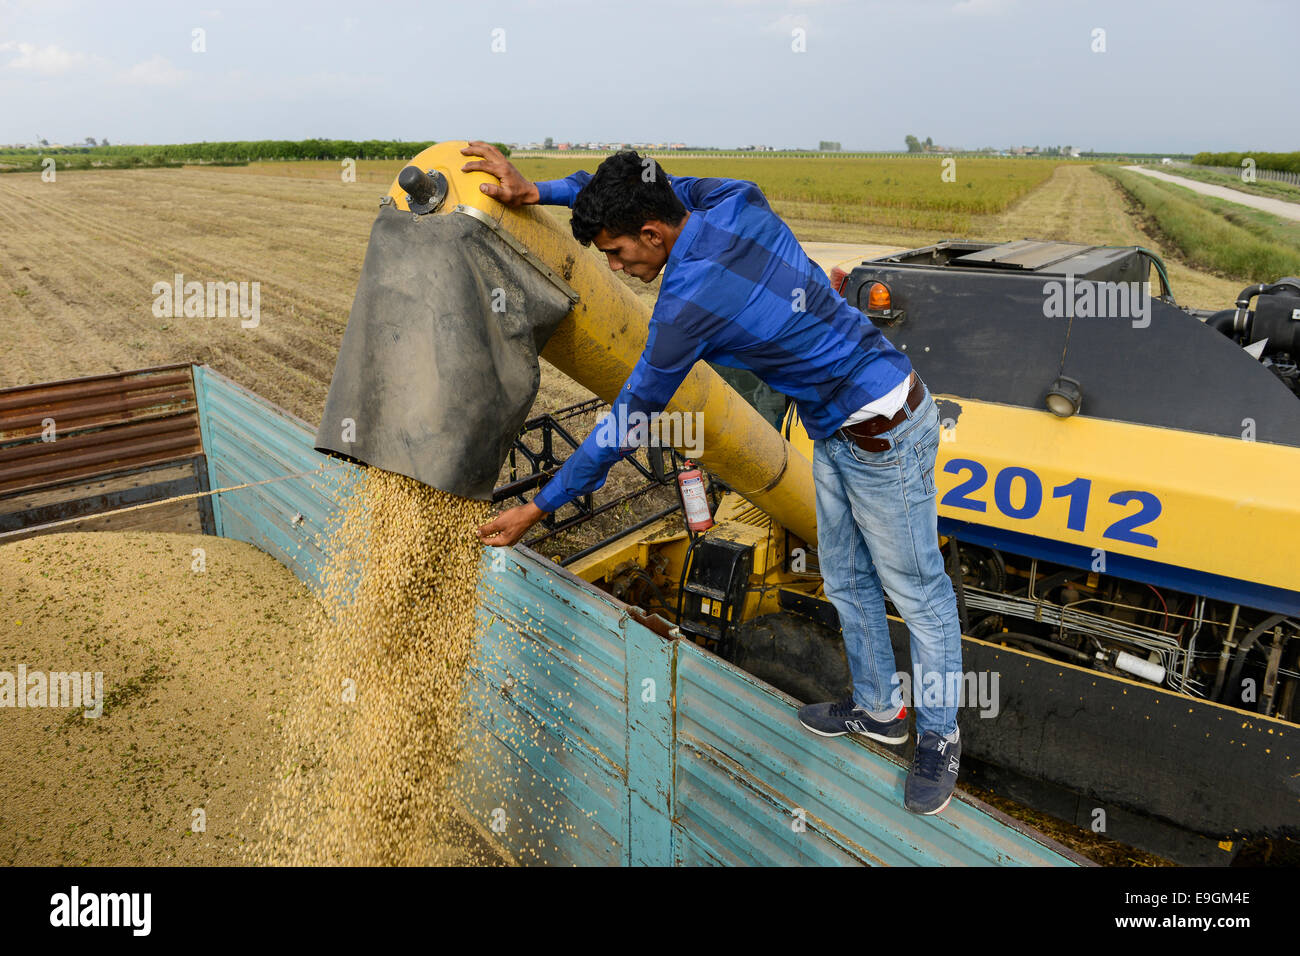 TURKEY, Solaklı Belediyesi, near Adana, harvest of conventional soy beans with New Holland combine harvester - Stock Image